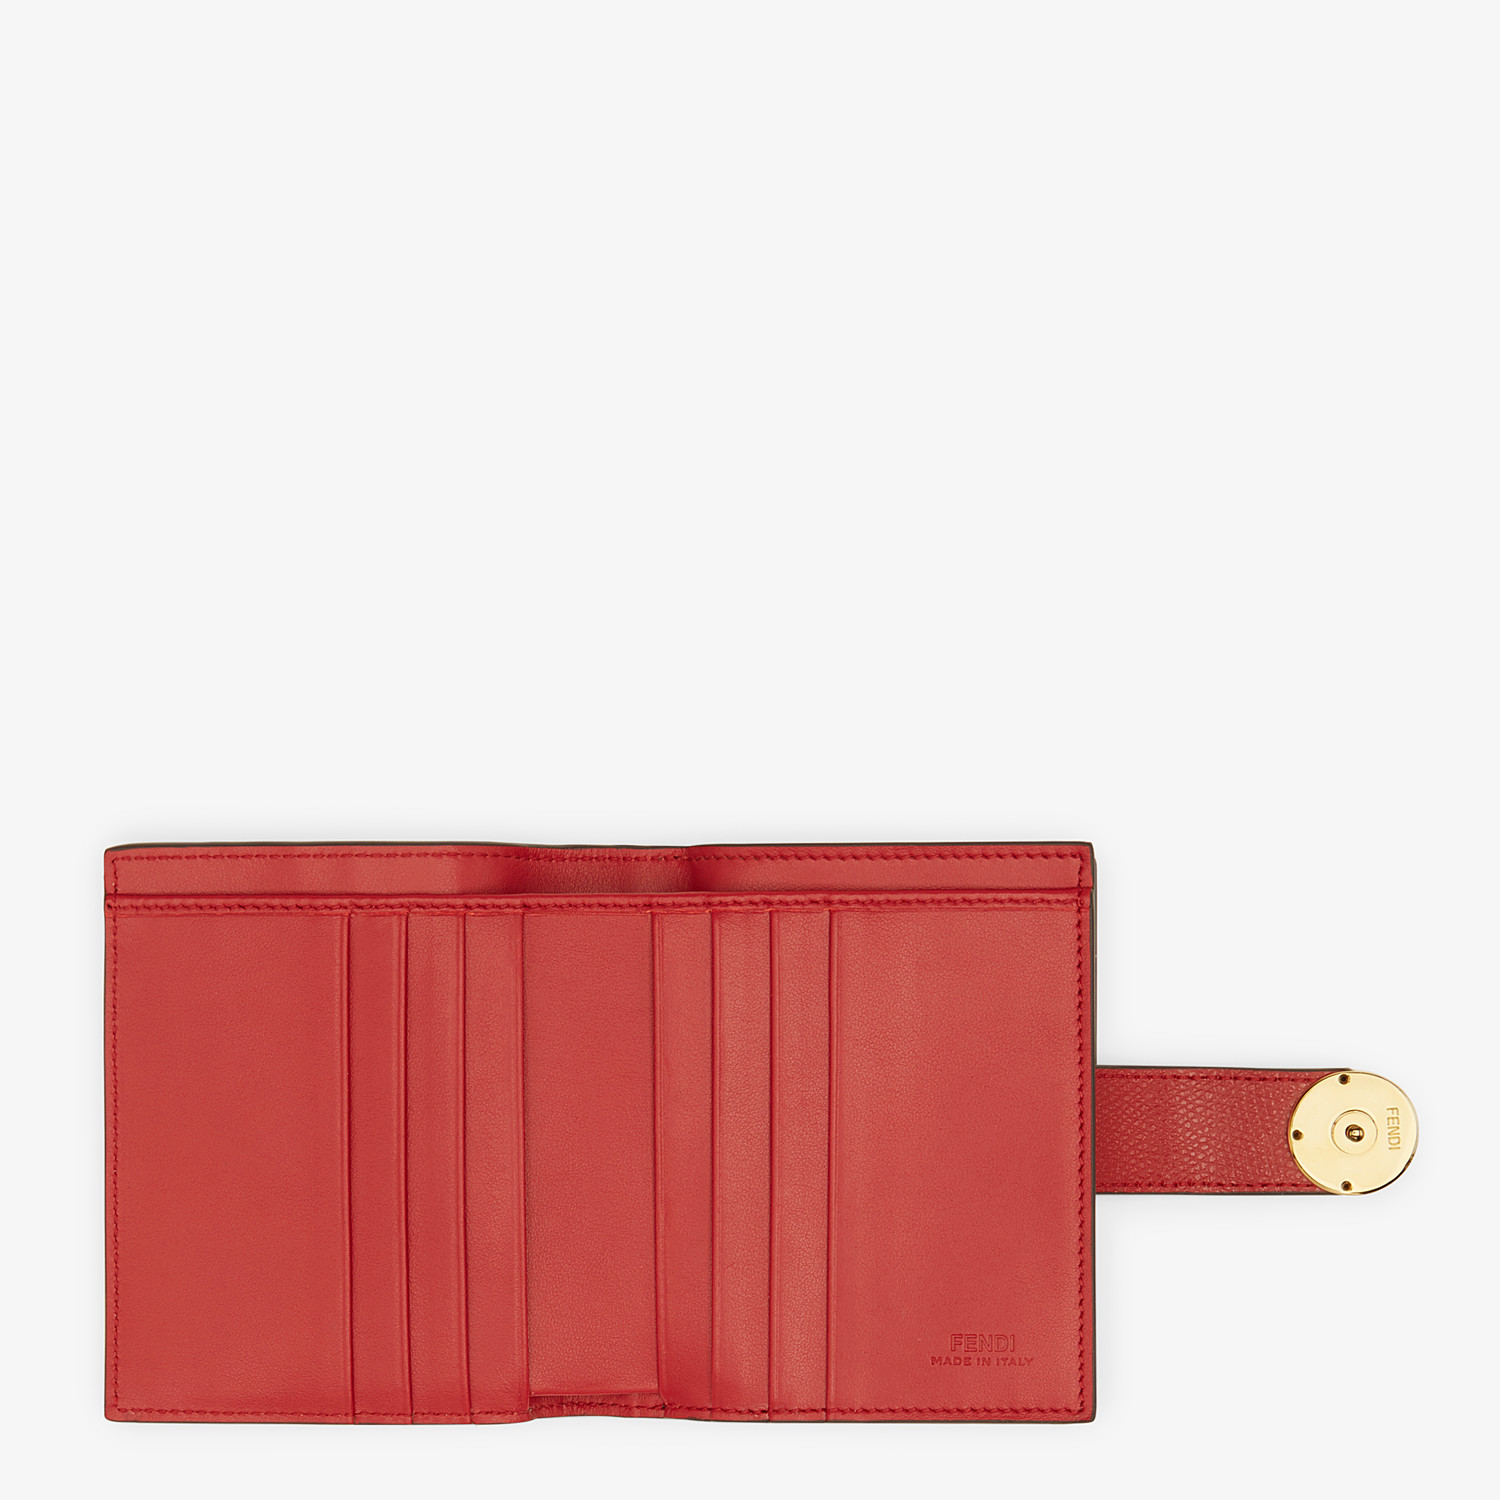 FENDI BIFOLD - Red leather compact wallet - view 5 detail